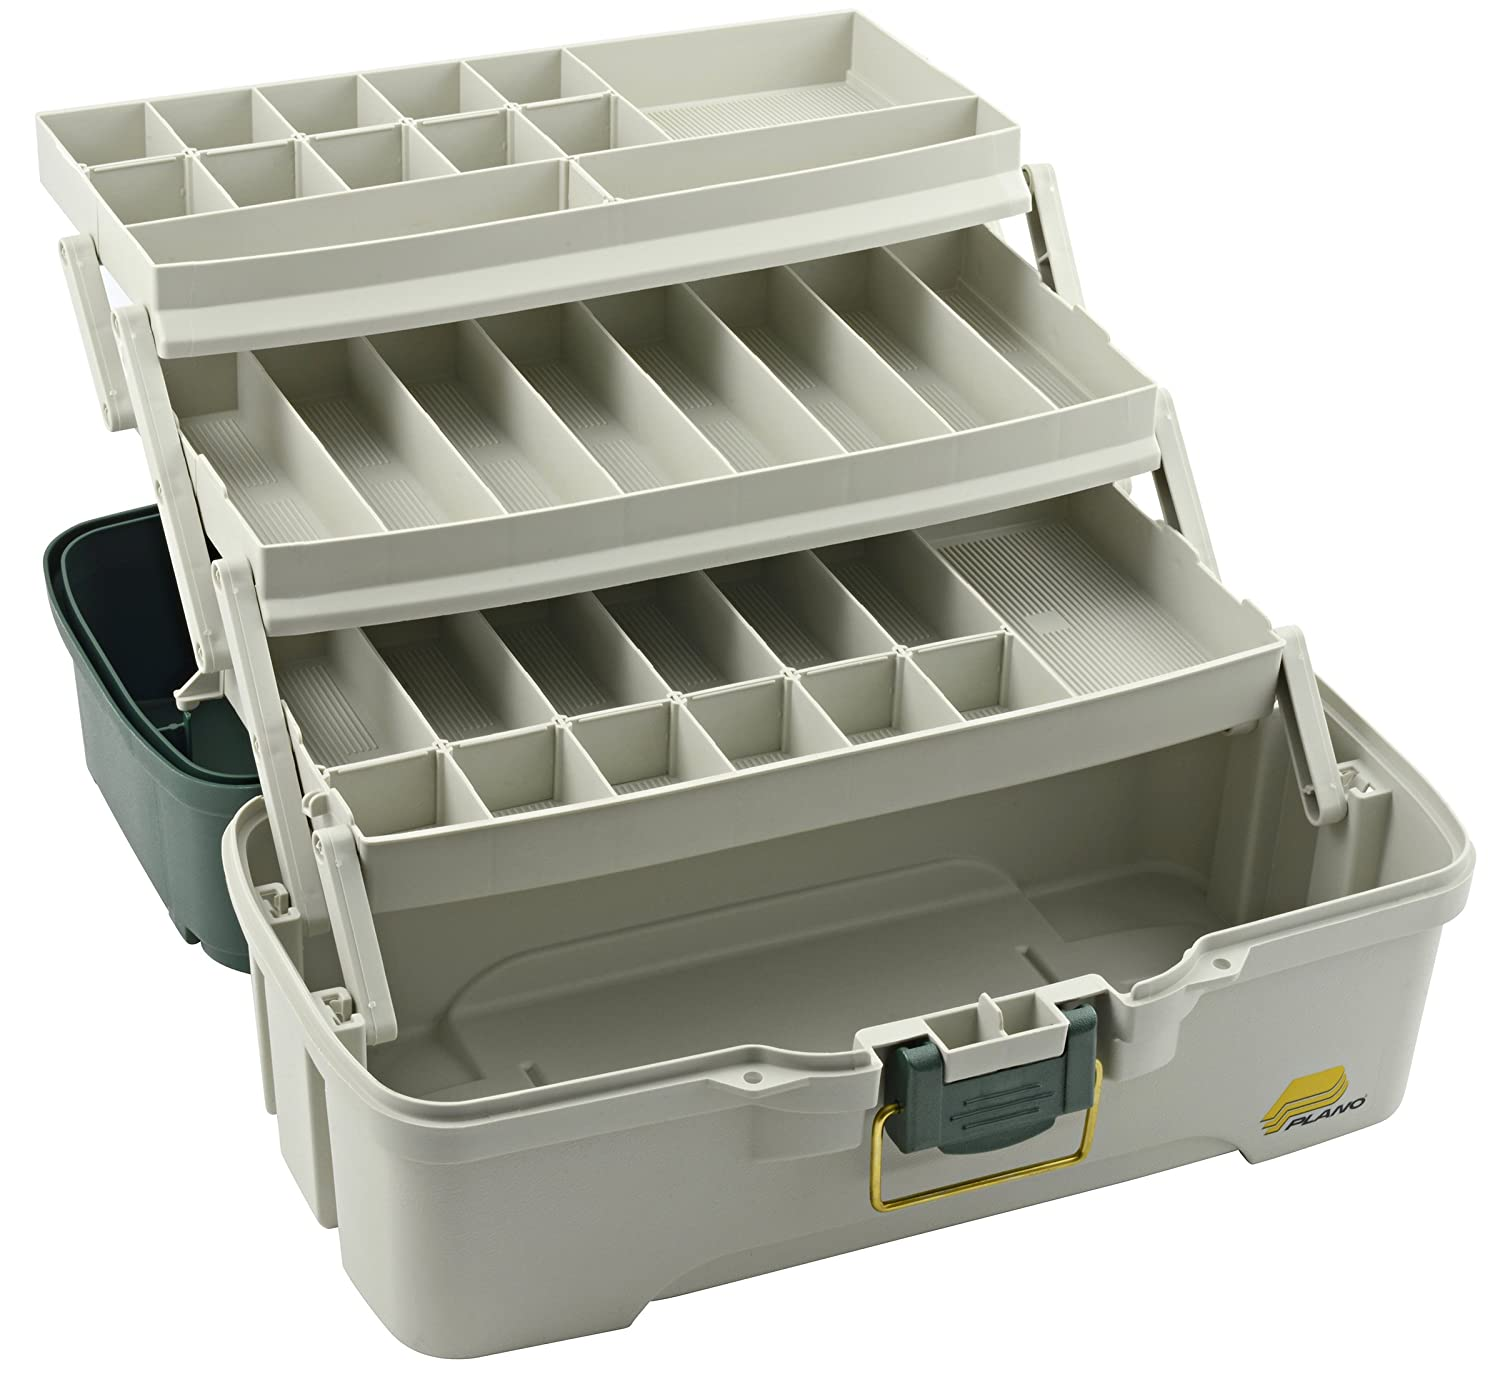 Amazon.com : Ready to Fish Saltwater Tackle Box with 3 Tray and Basic Tackle, 50 Piece : Tackle Boxes For Fishing With Tackle : Sports & Outdoors